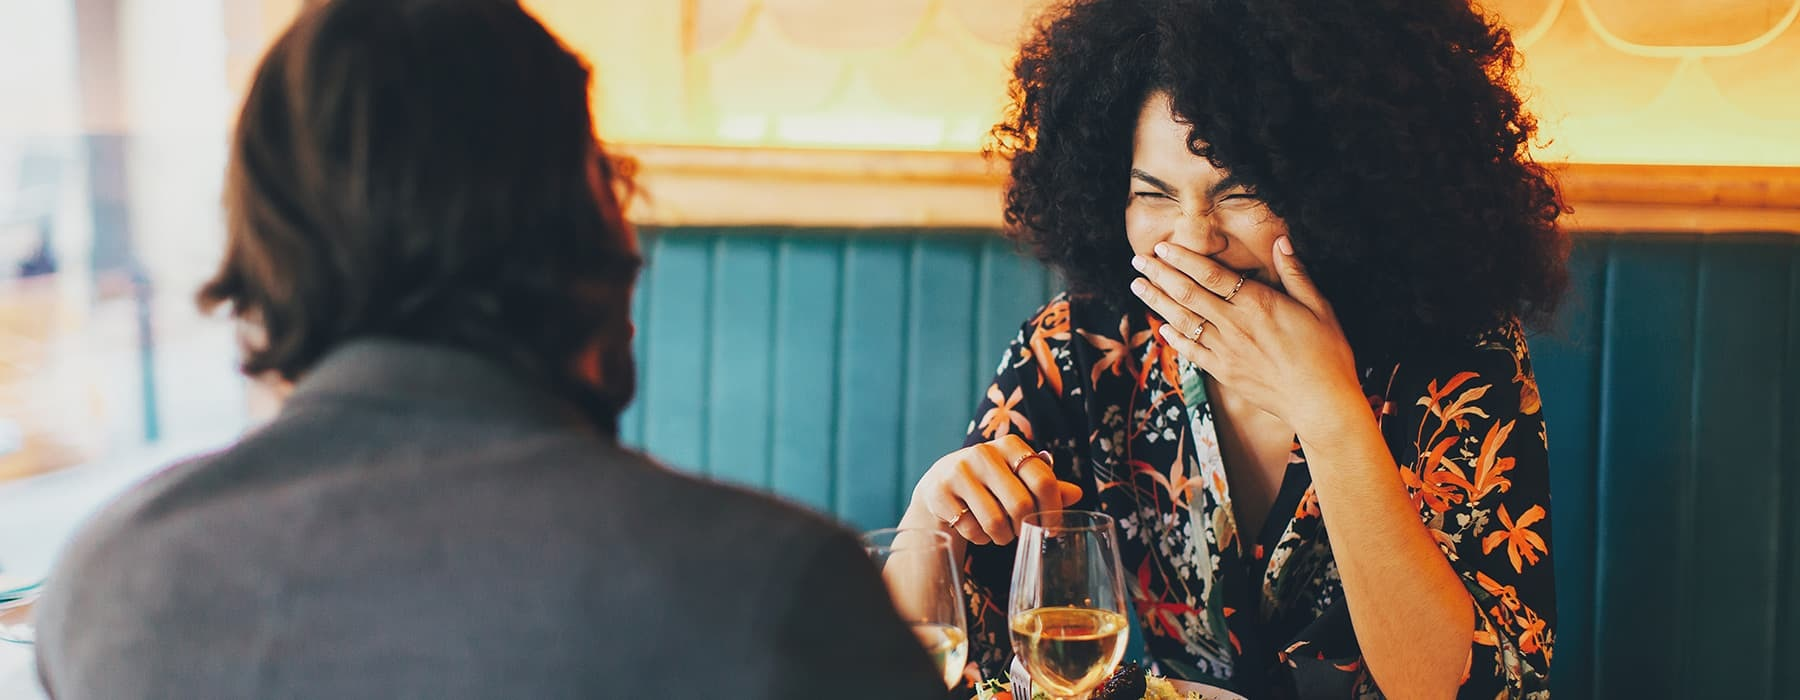 lifestyle image of a woman laughing in a restaraunt